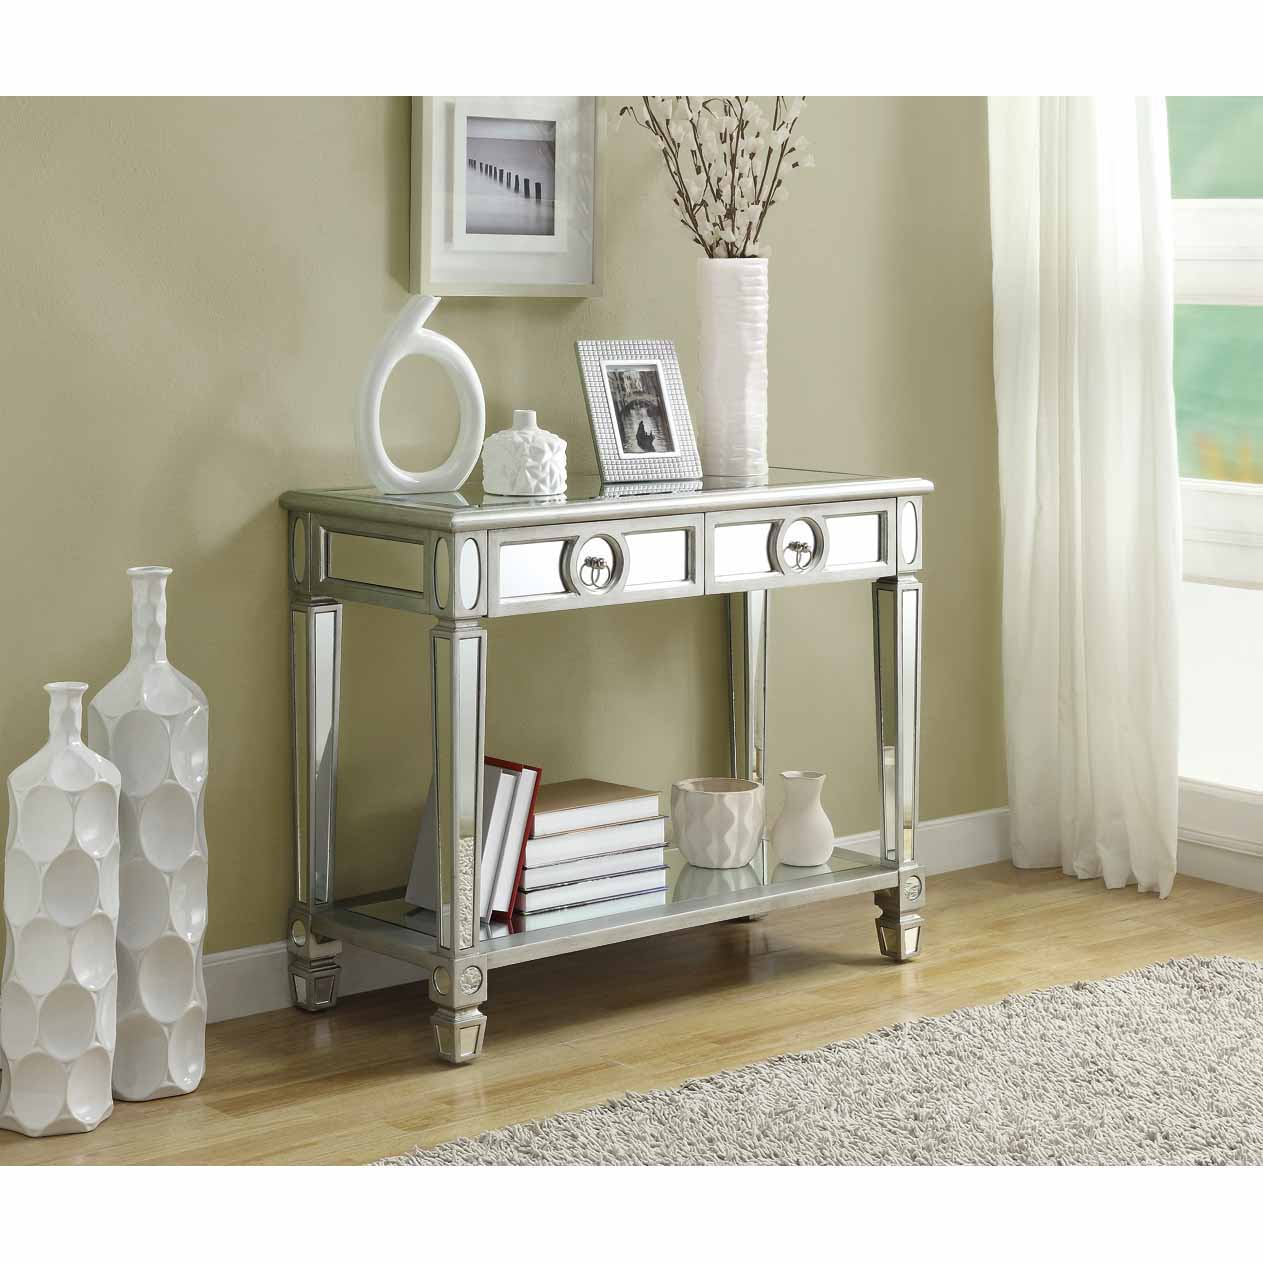 Mirrored 38-inch Sofa Console Table With Two Drawers - Thumbnail 0